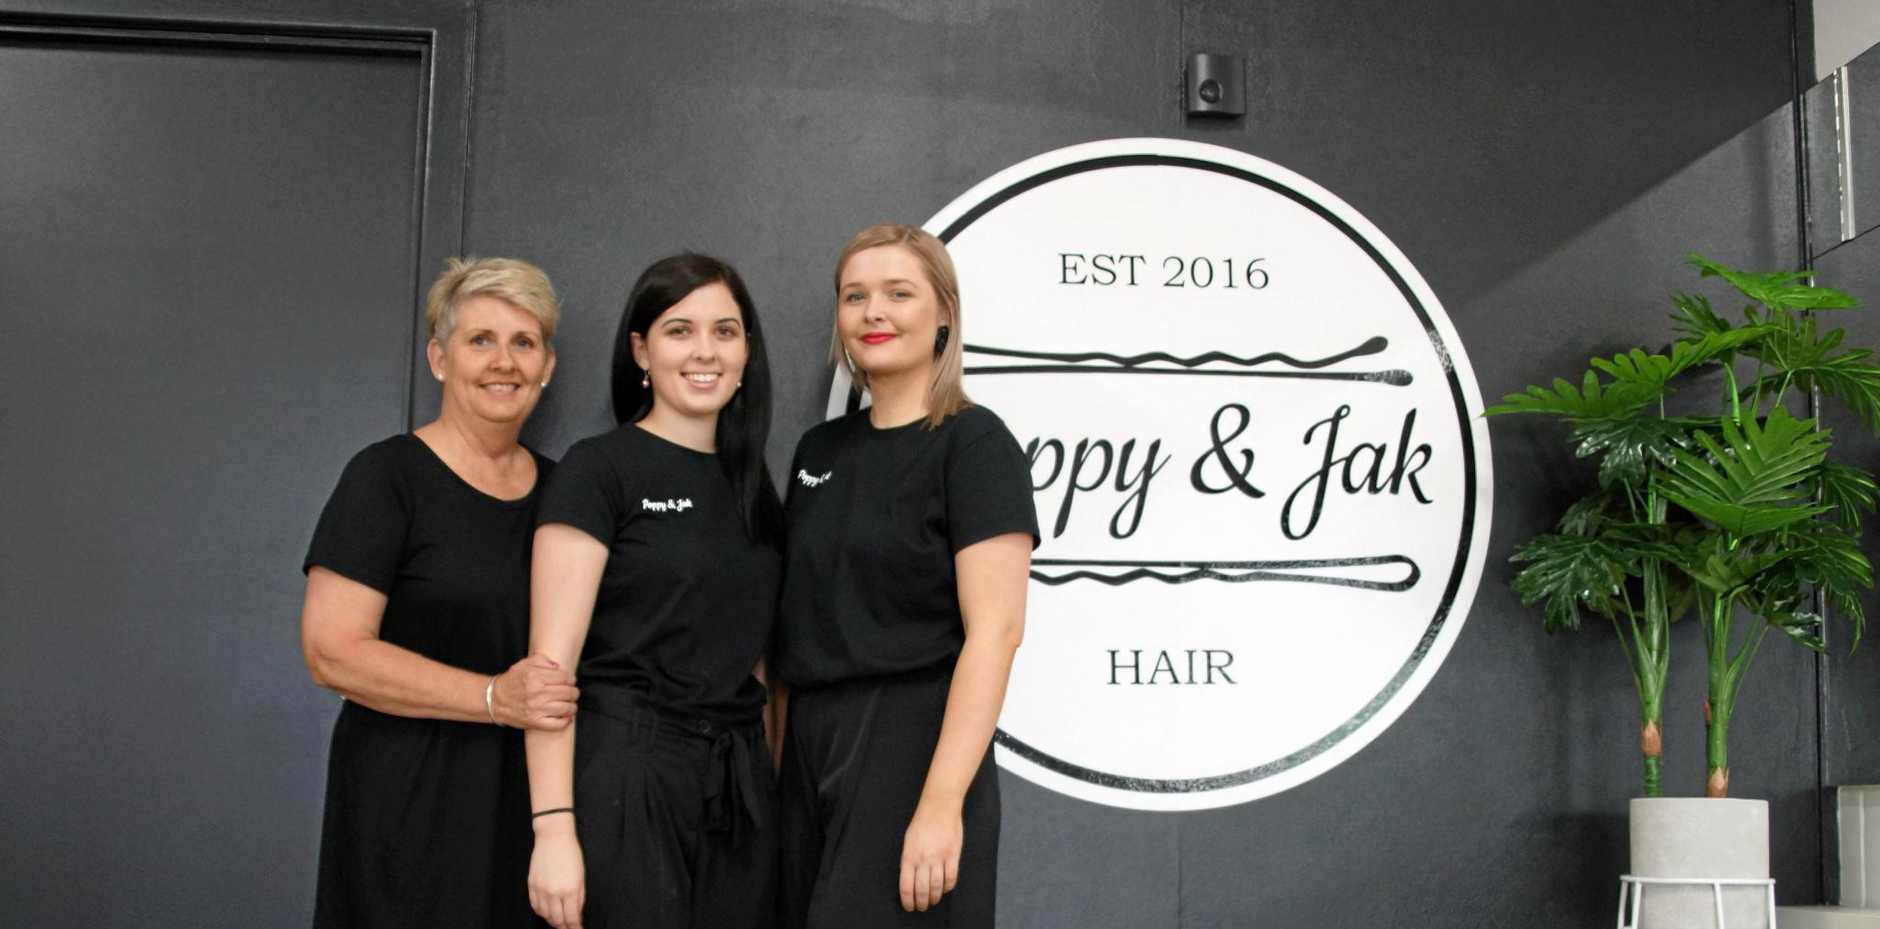 FAMILY TEAM: Tracey Kirkpatrick, Shannon Kirkpatrick and Meagan O'Shea on the opening day of Poppy & Jak Hair in Walkerston.